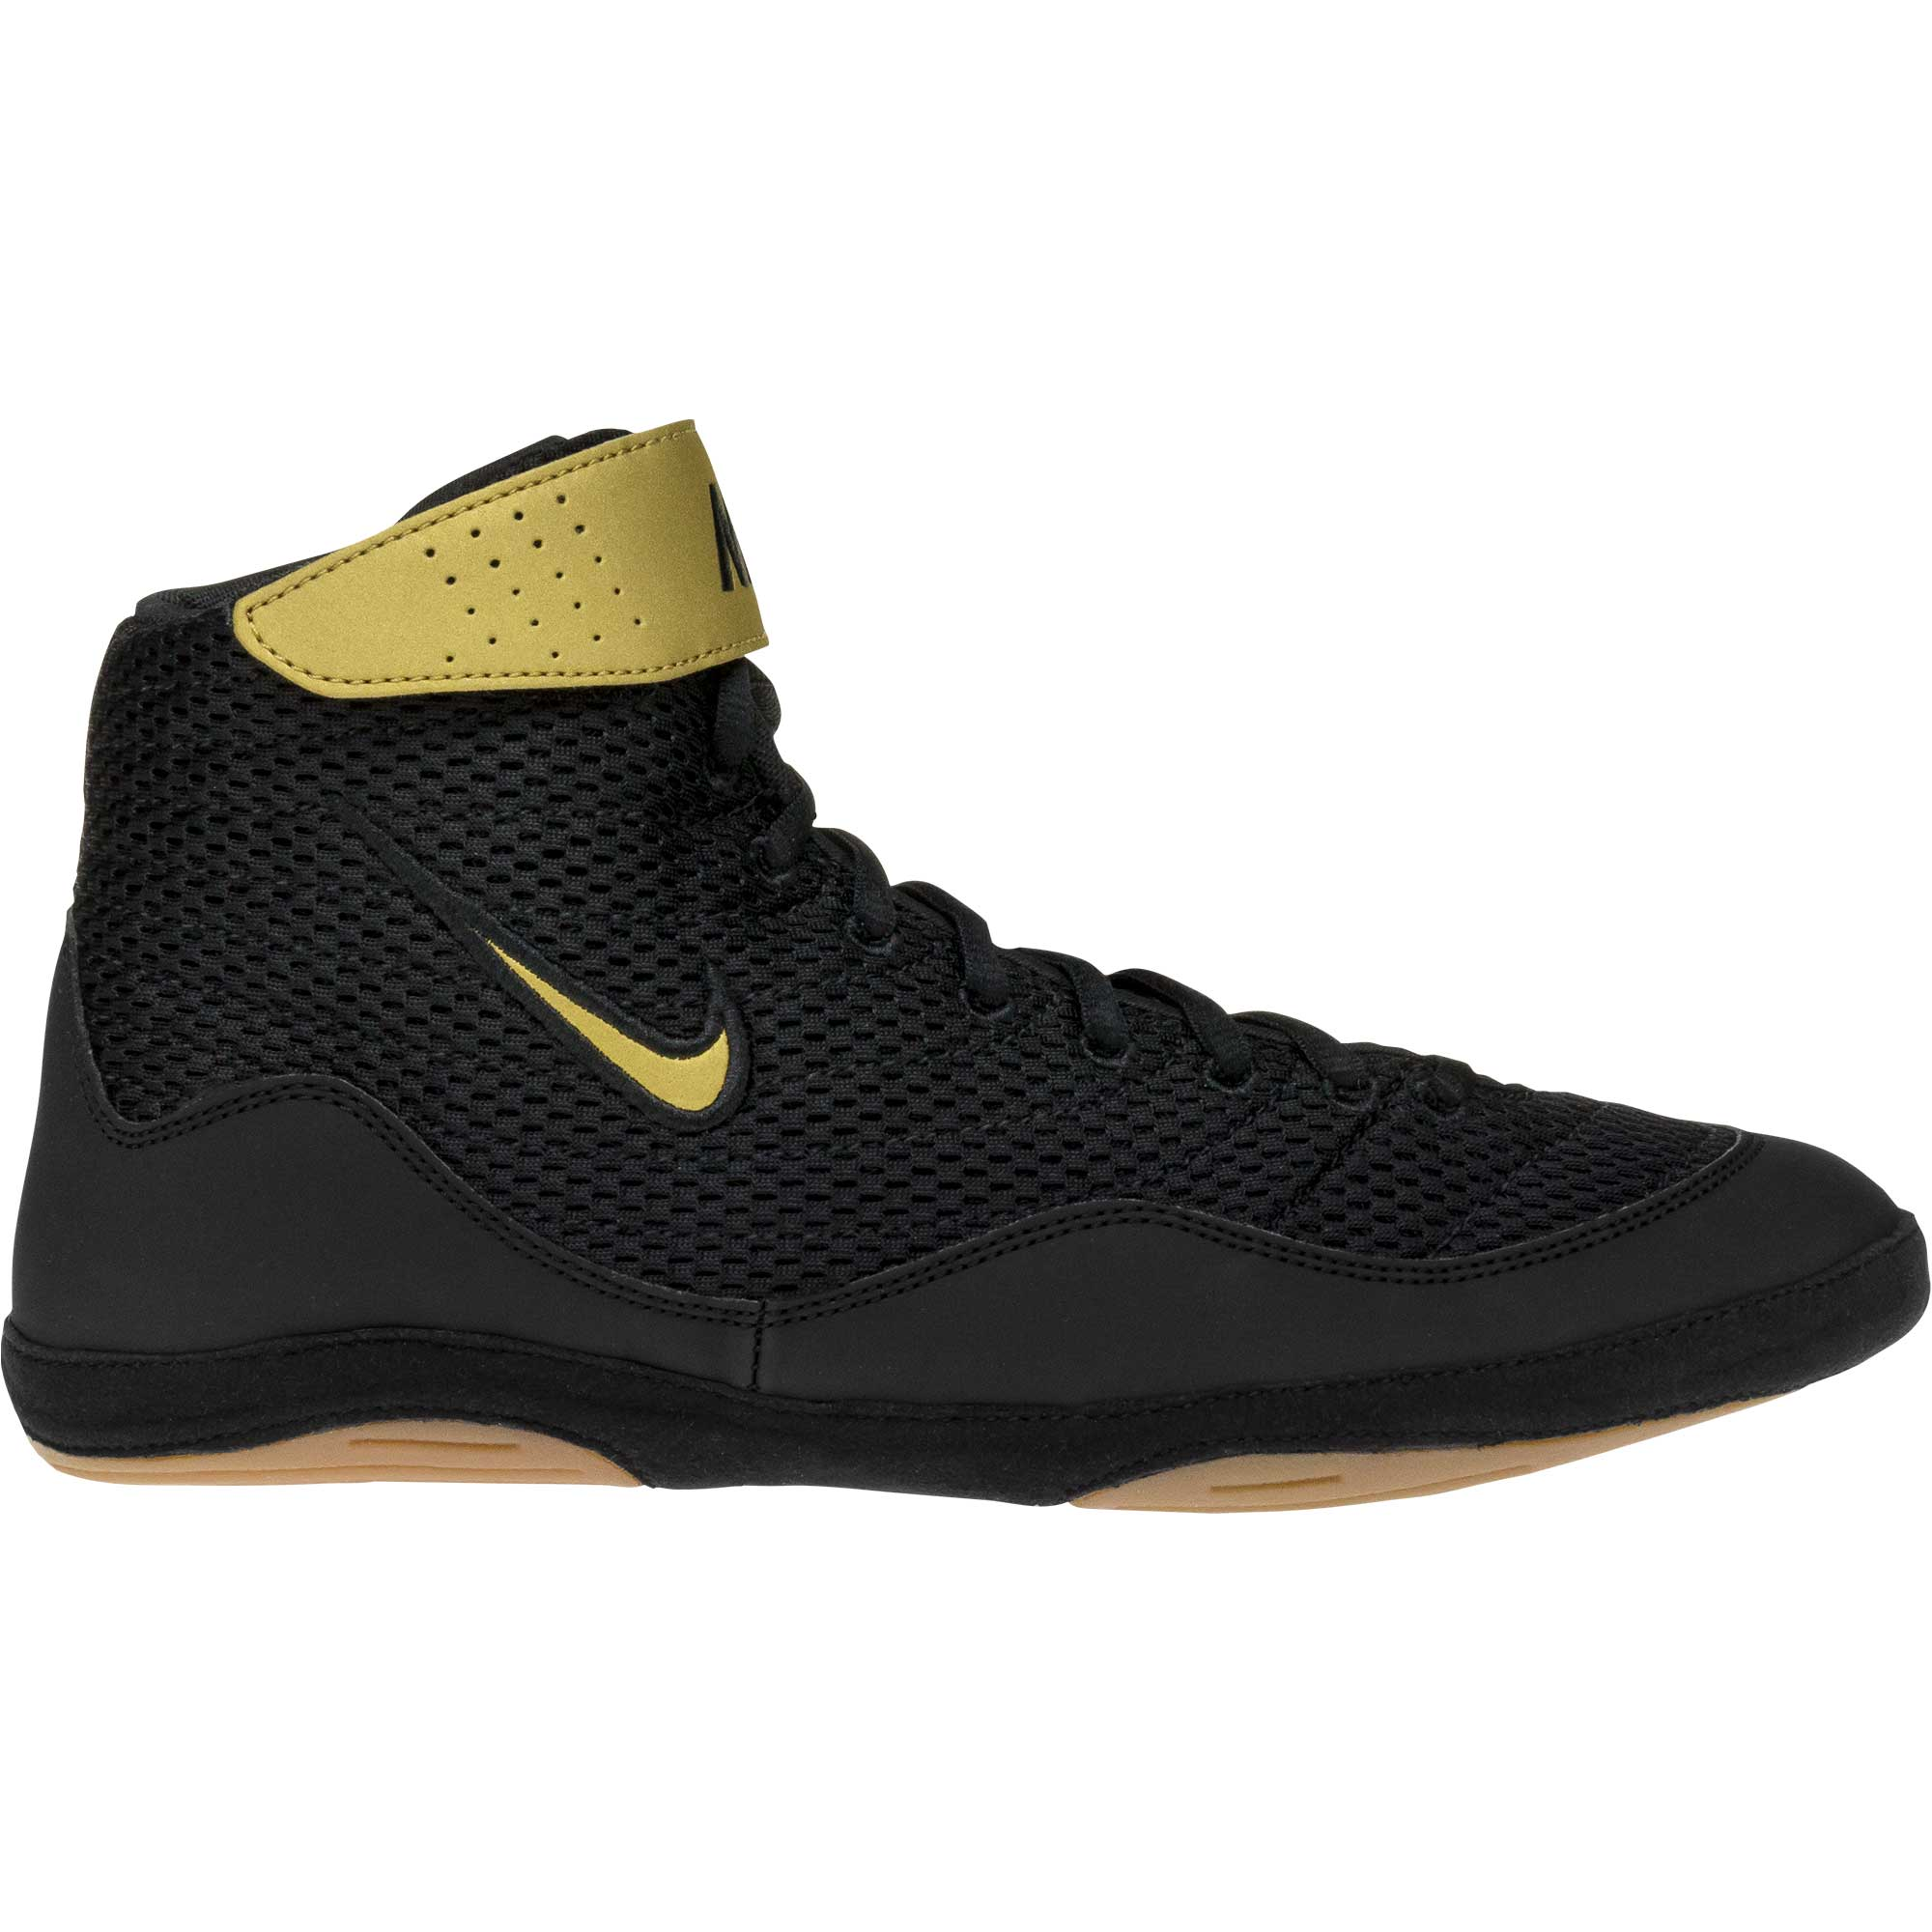 on sale 139de 8fcfe Nike Inflict 3 Shoes   WrestlingMart   Free Shipping